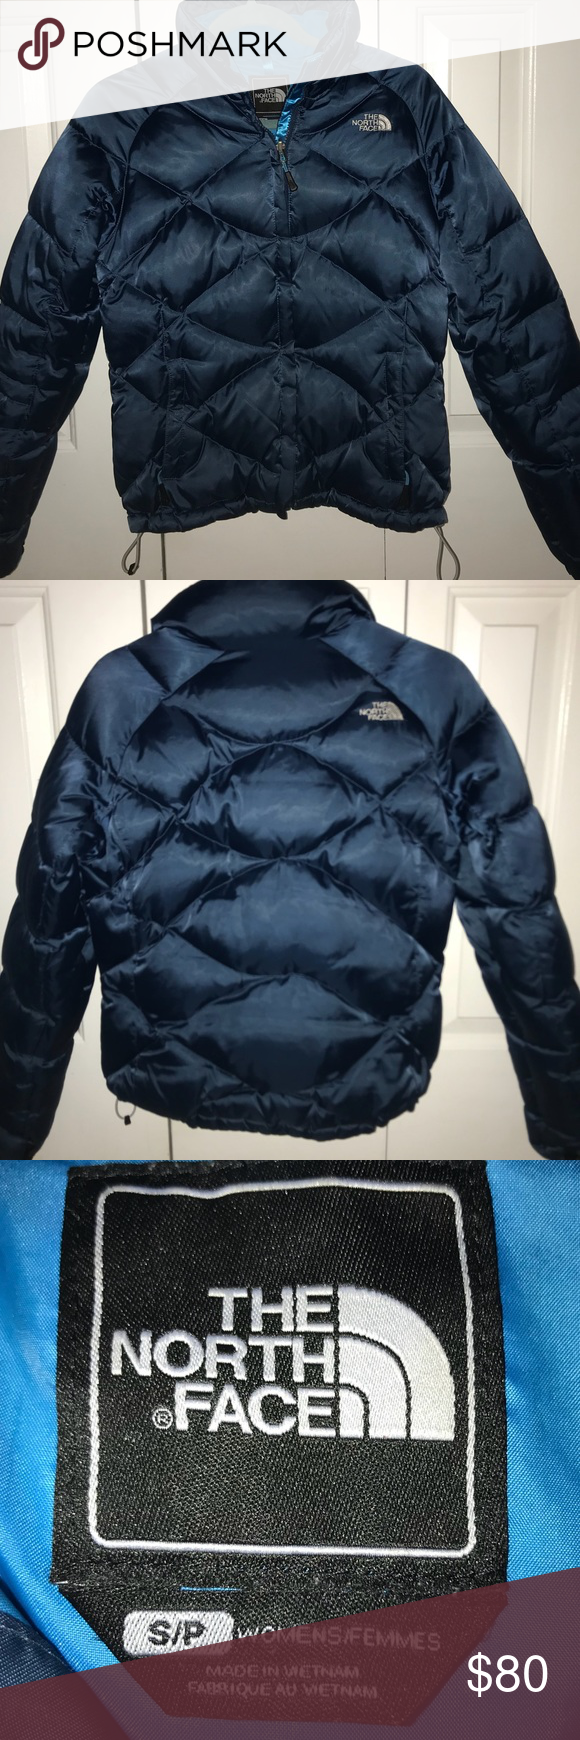 Women S North Face Bubble Jacket Navy Blue Puffer Jacket Great Condition No Rips Or Holes Size S Smoke North Face Bubble Jacket Jackets Blue Puffer Jacket [ 1740 x 580 Pixel ]